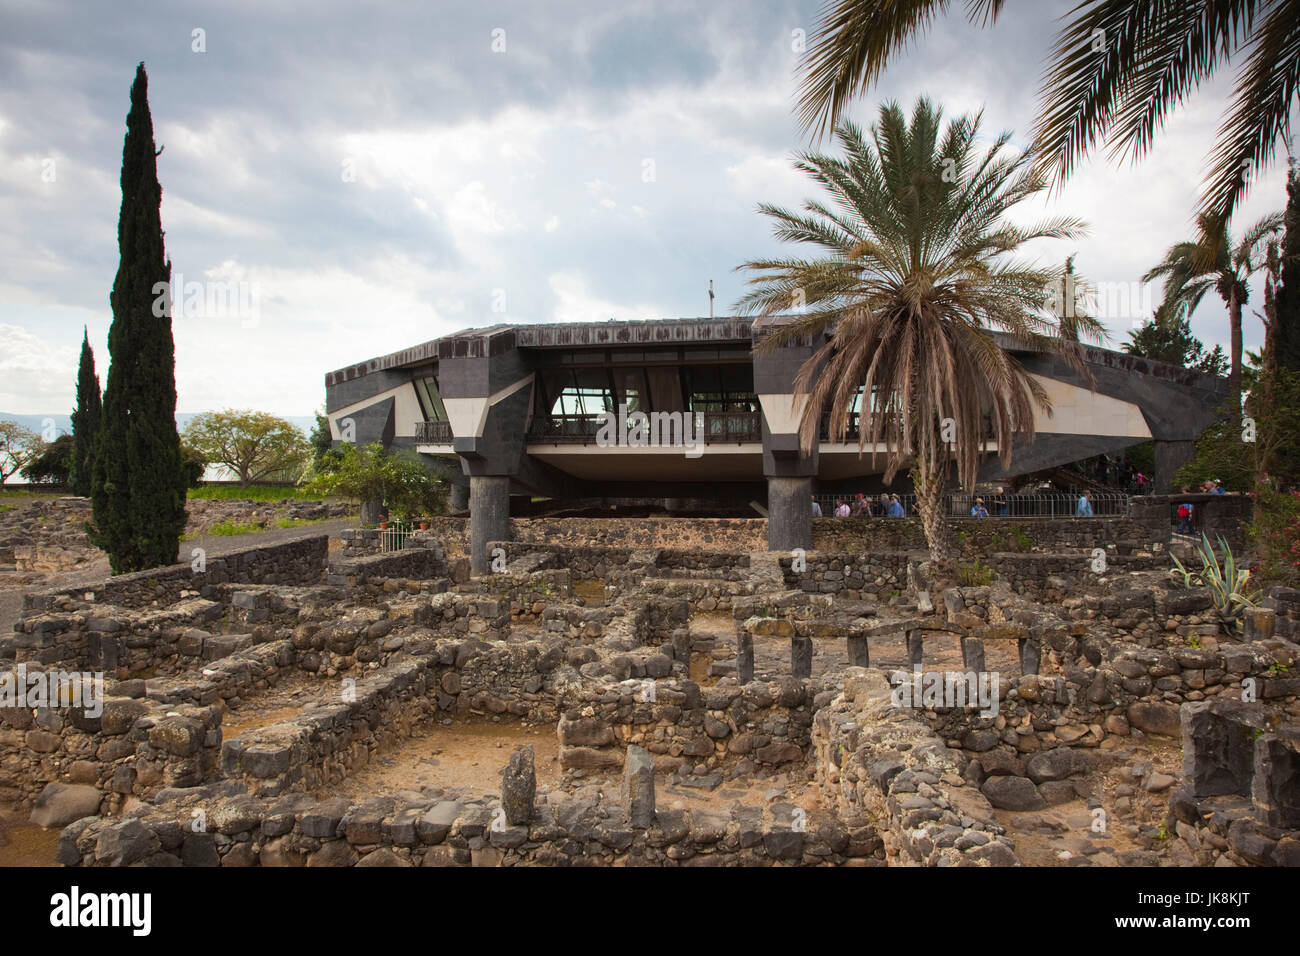 Israel, The Galilee, Capernaum, ruins of biblical-era village home to Jesus Christ during his time in the Galilee Stock Photo